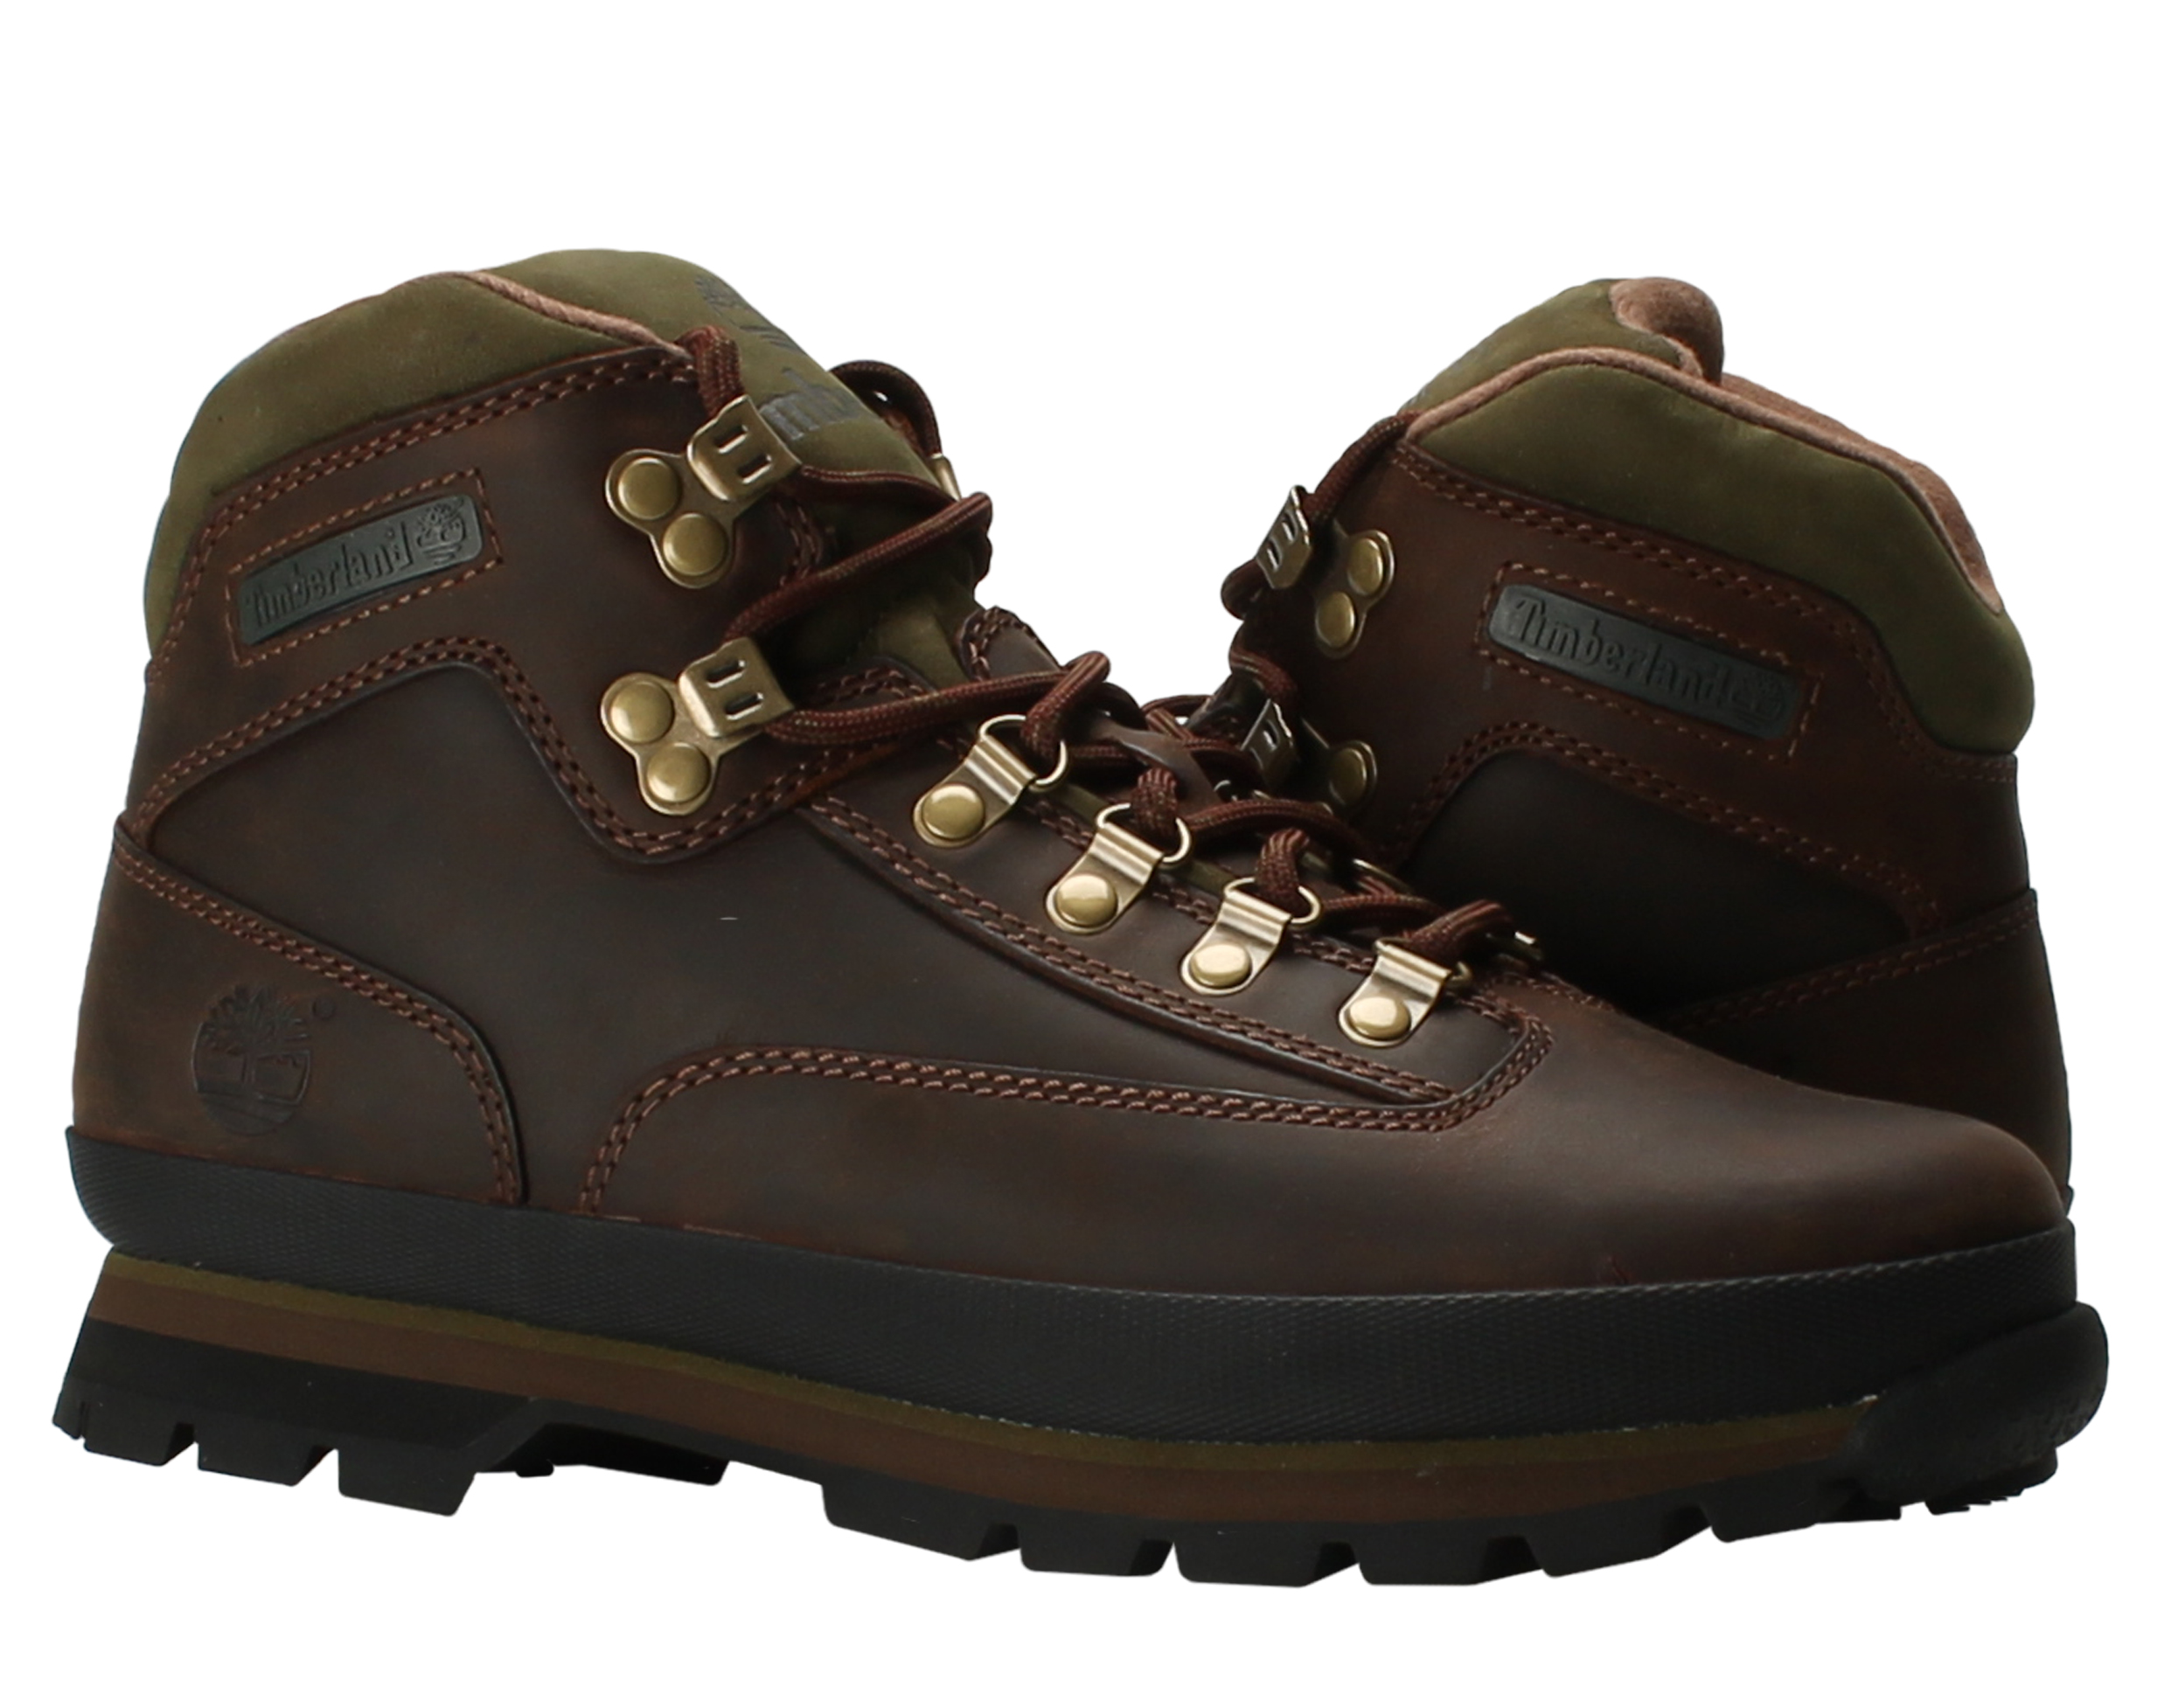 Timberland Euro Hiker Oiled Leather Brown Men's Hiking Boots 95100 by Timberland